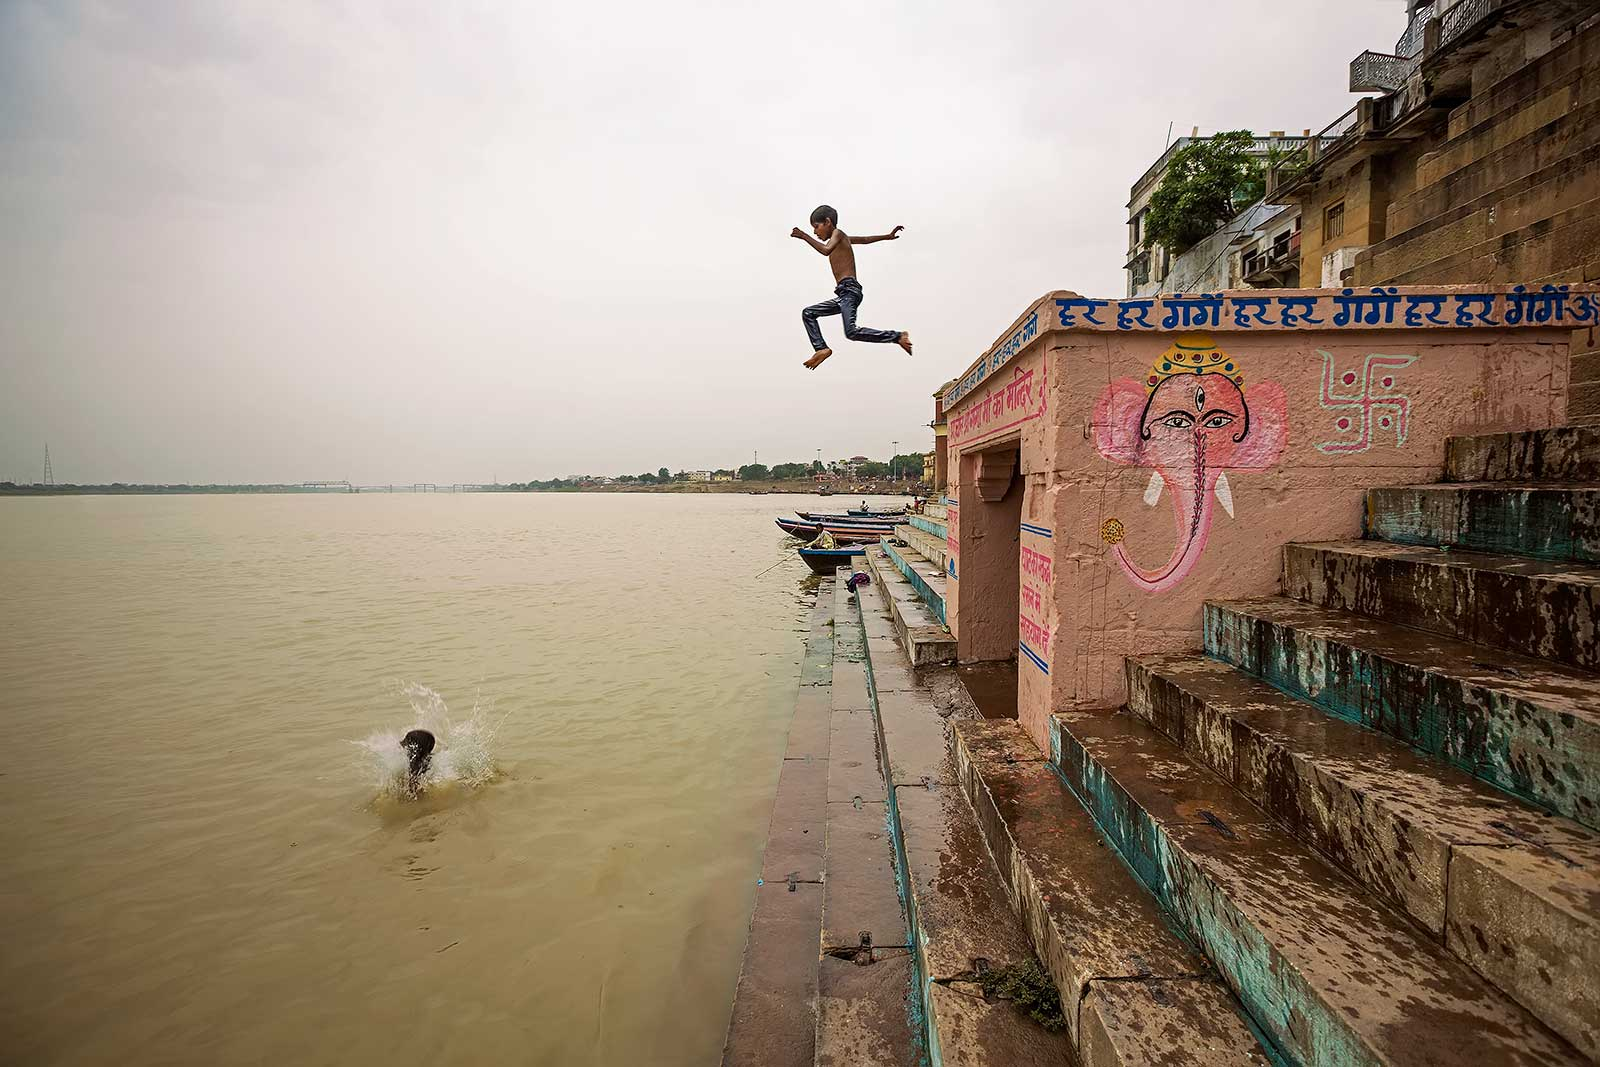 Kids jumping into the Ganges river while walking along the Ghats in Varanasi.